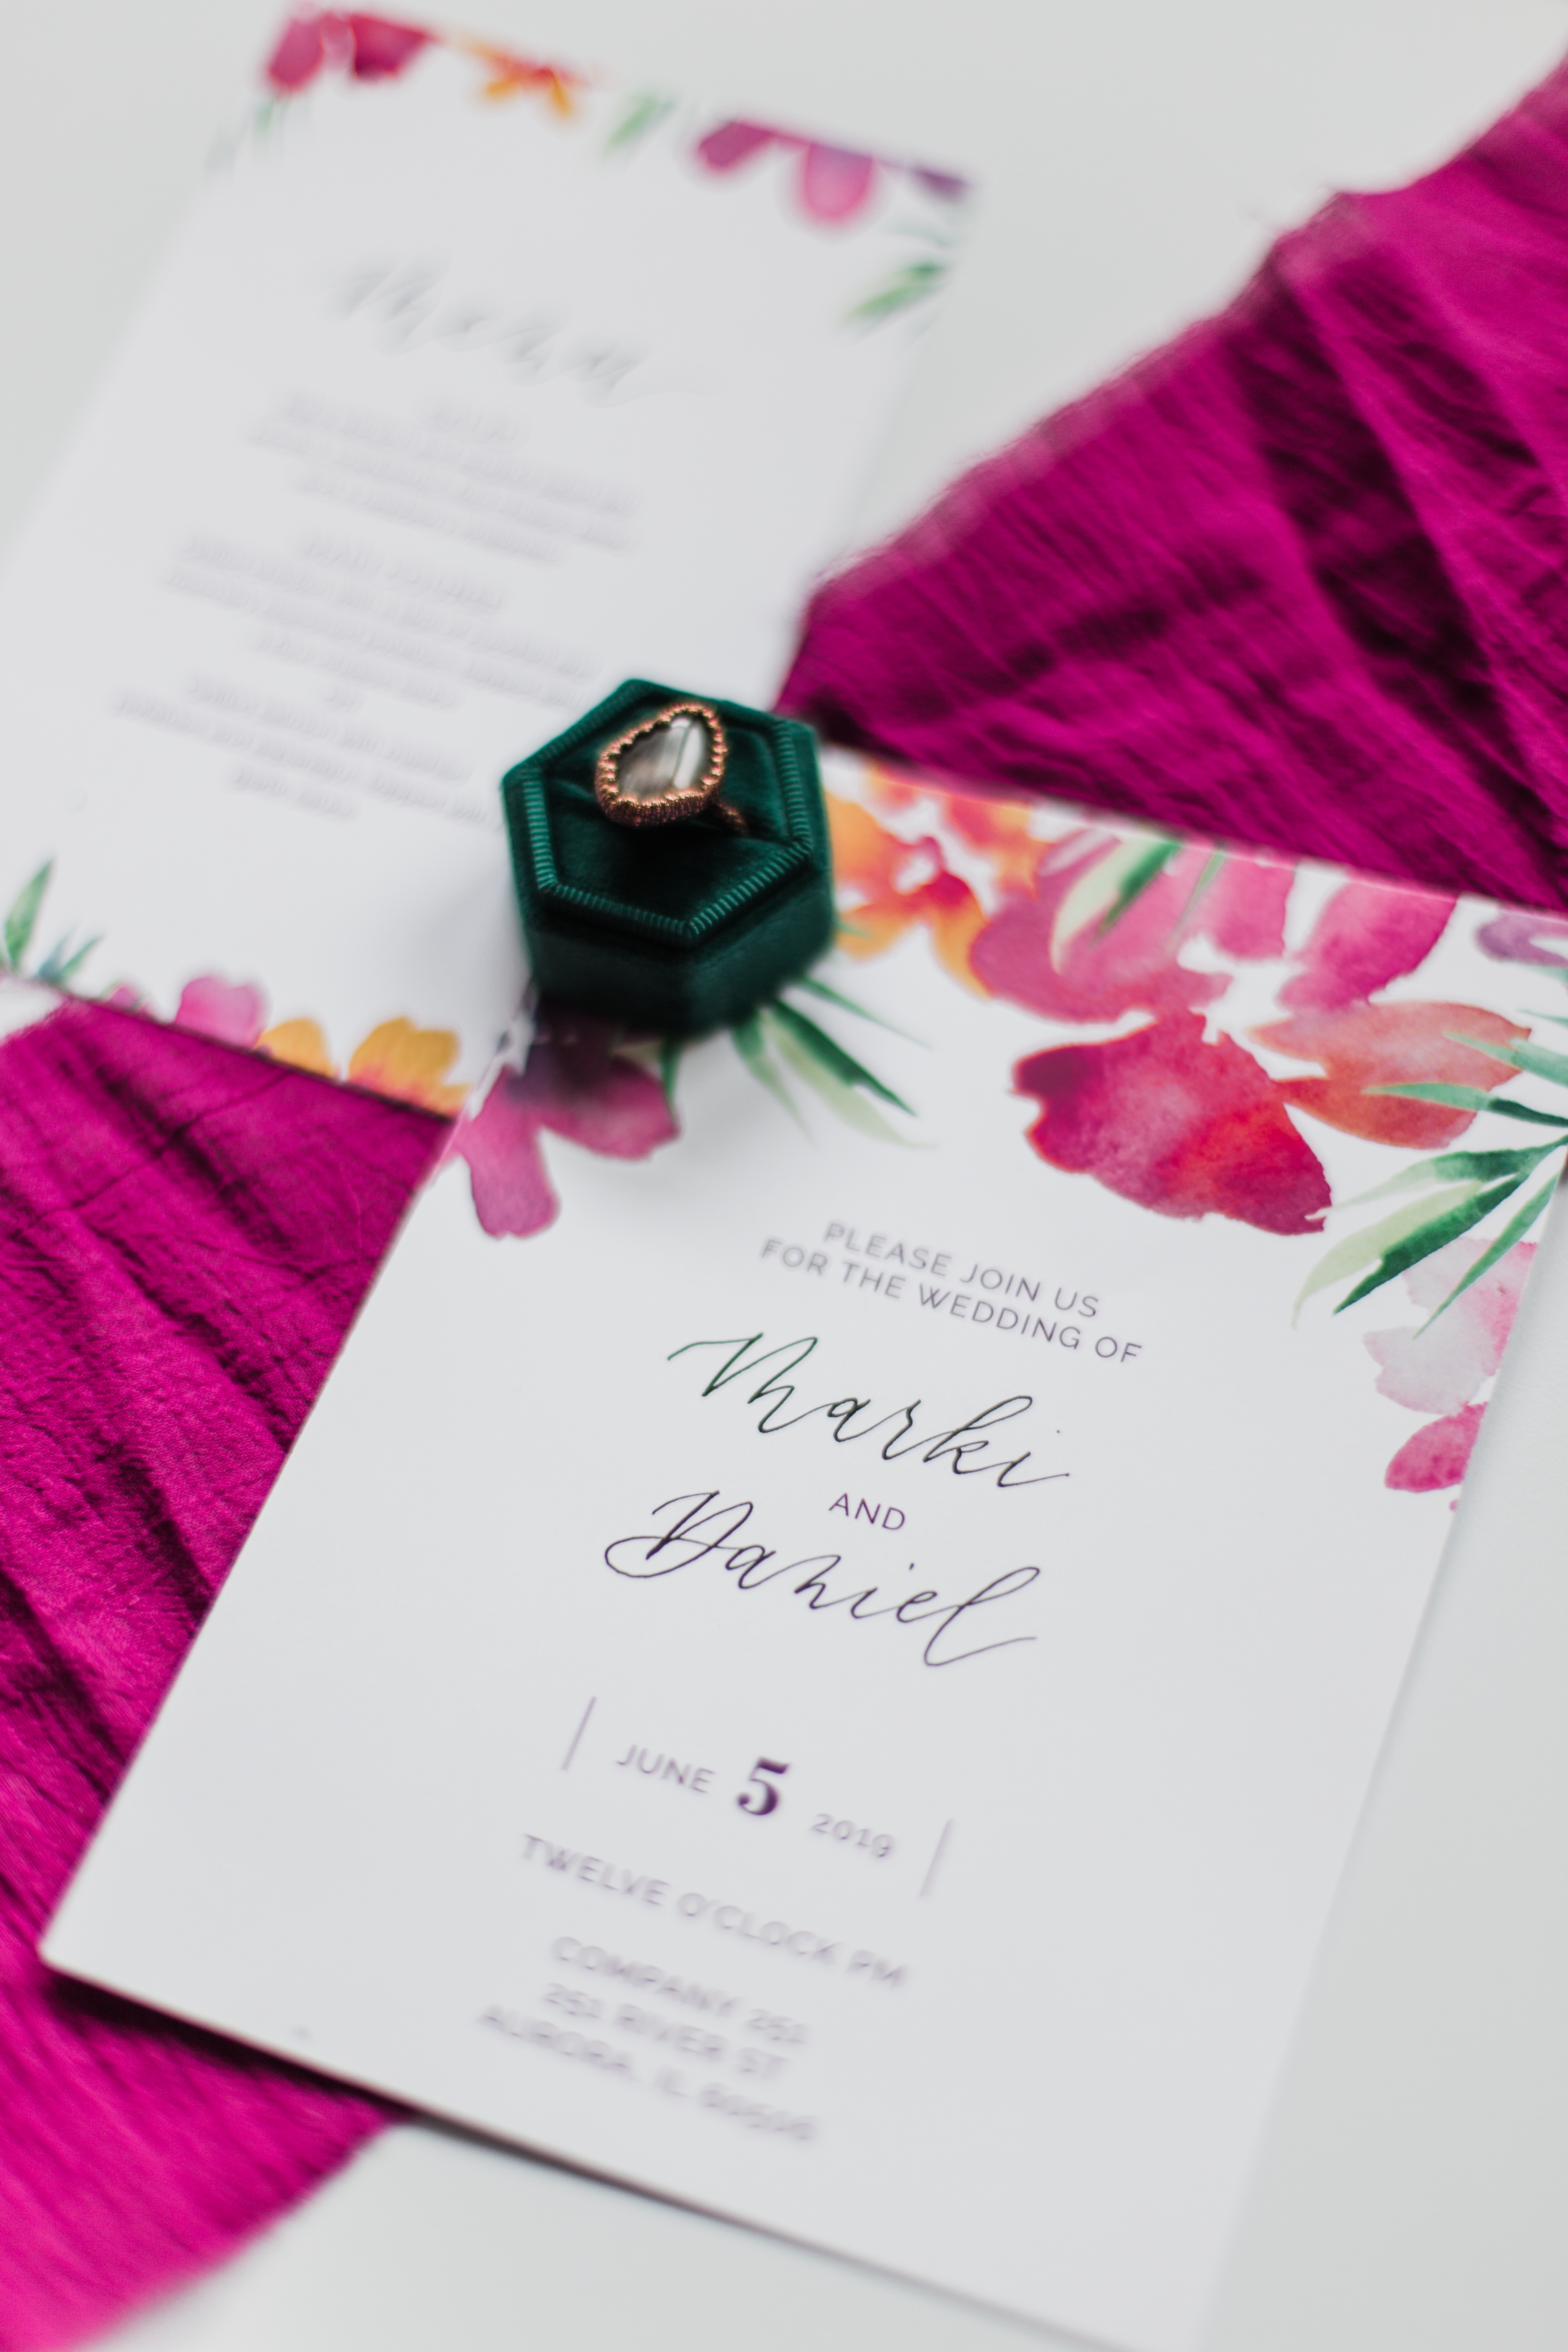 Highlights Jewelry and Invites and Calligraphy